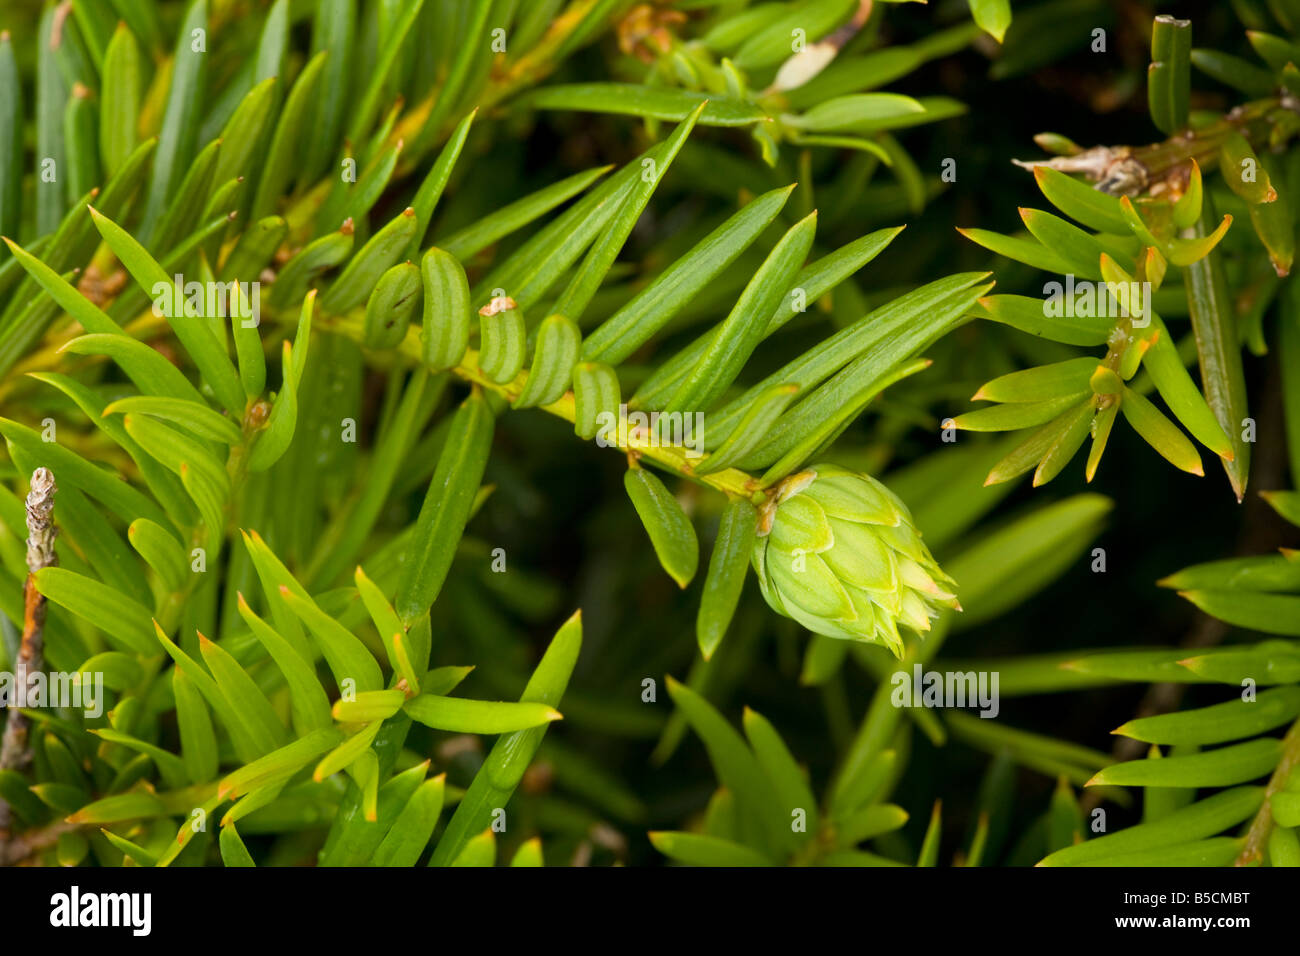 Artichoke gall on yew bud caused by a gall fly Taxomyia taxi - Stock Image